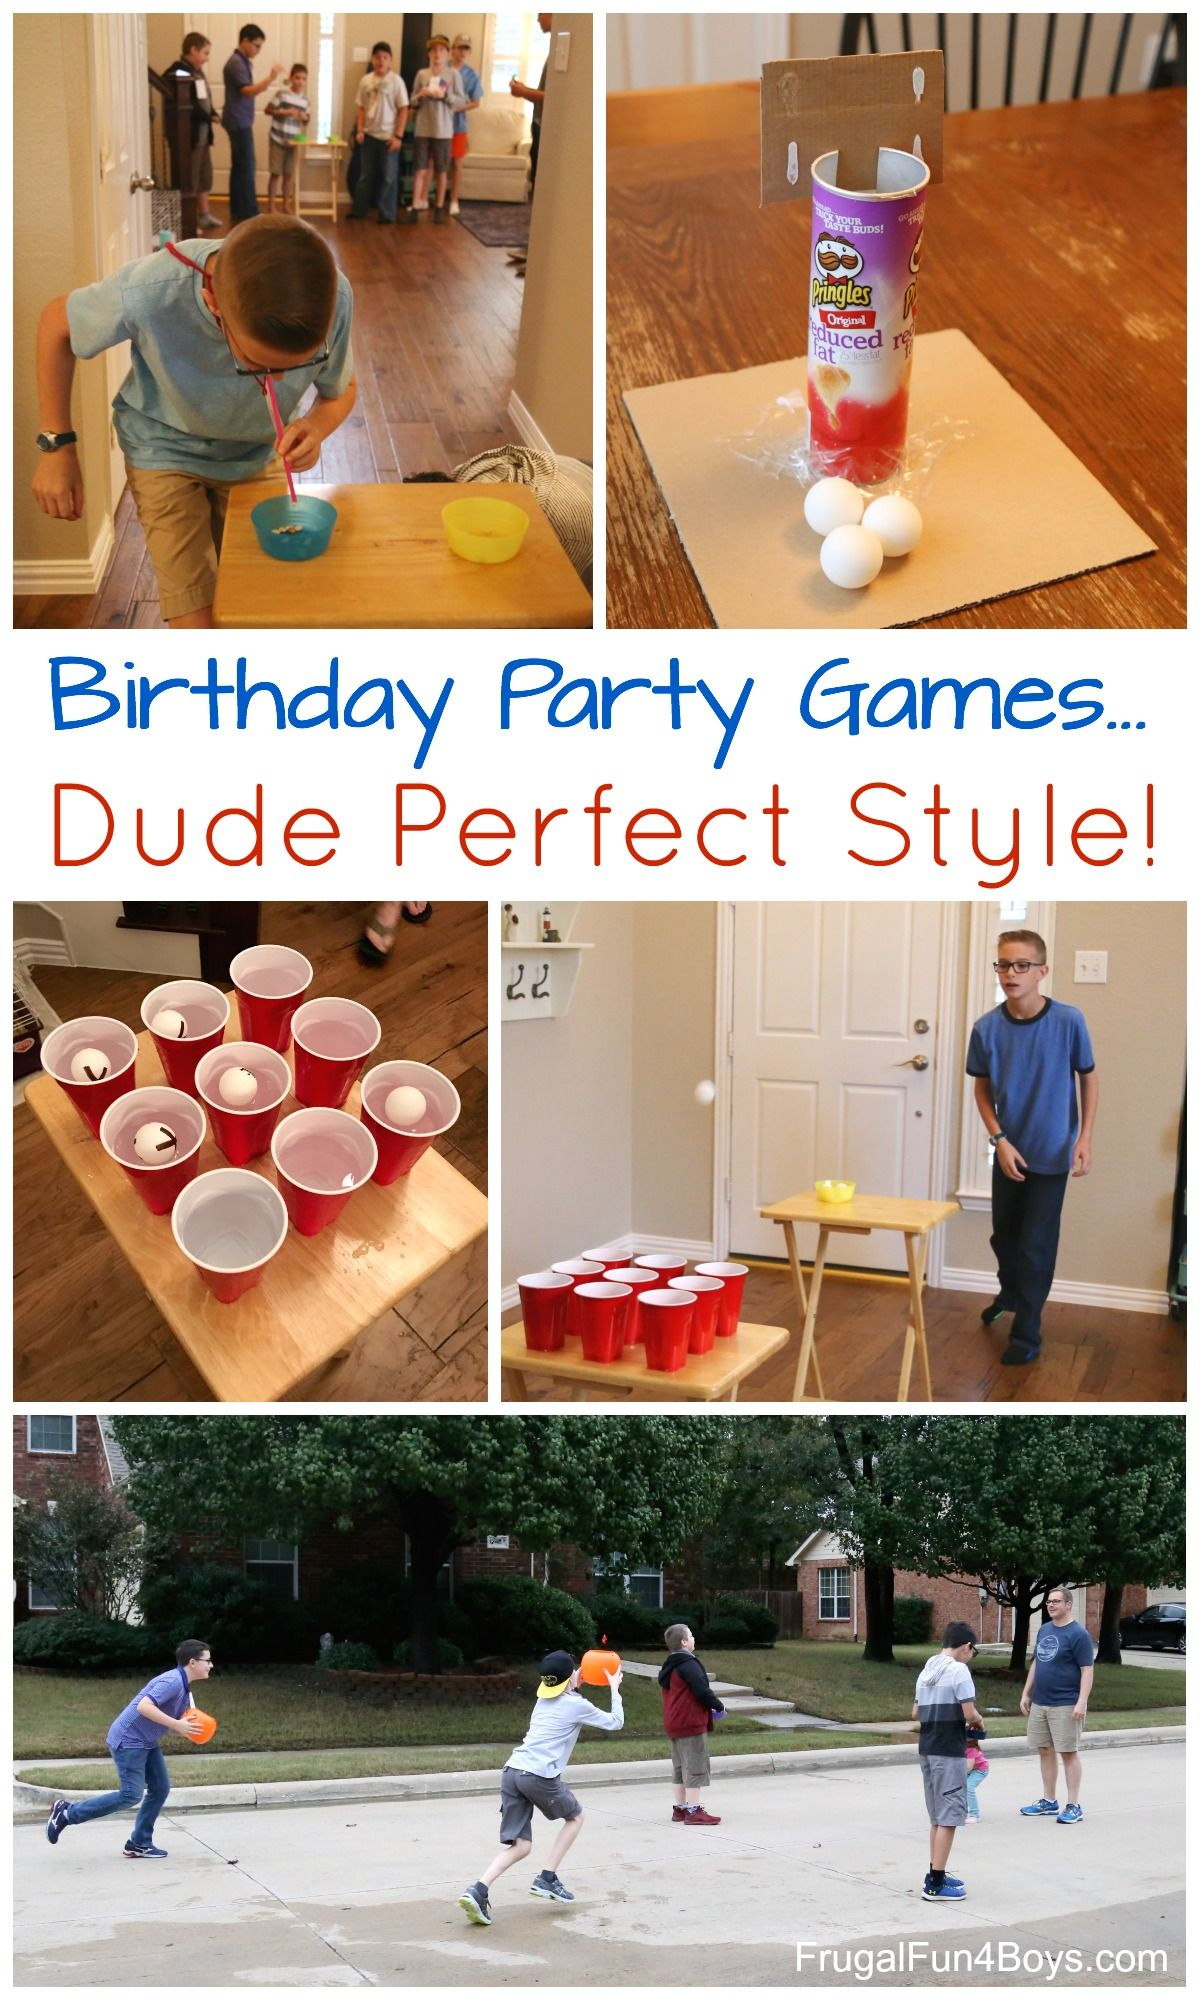 Awesome Game Ideas For A Dude Perfect Style Birthday Party Frugal Fun For Boys And Girls Boys Birthday Party Games Birthday Party Games For Kids Birthday Party Activities